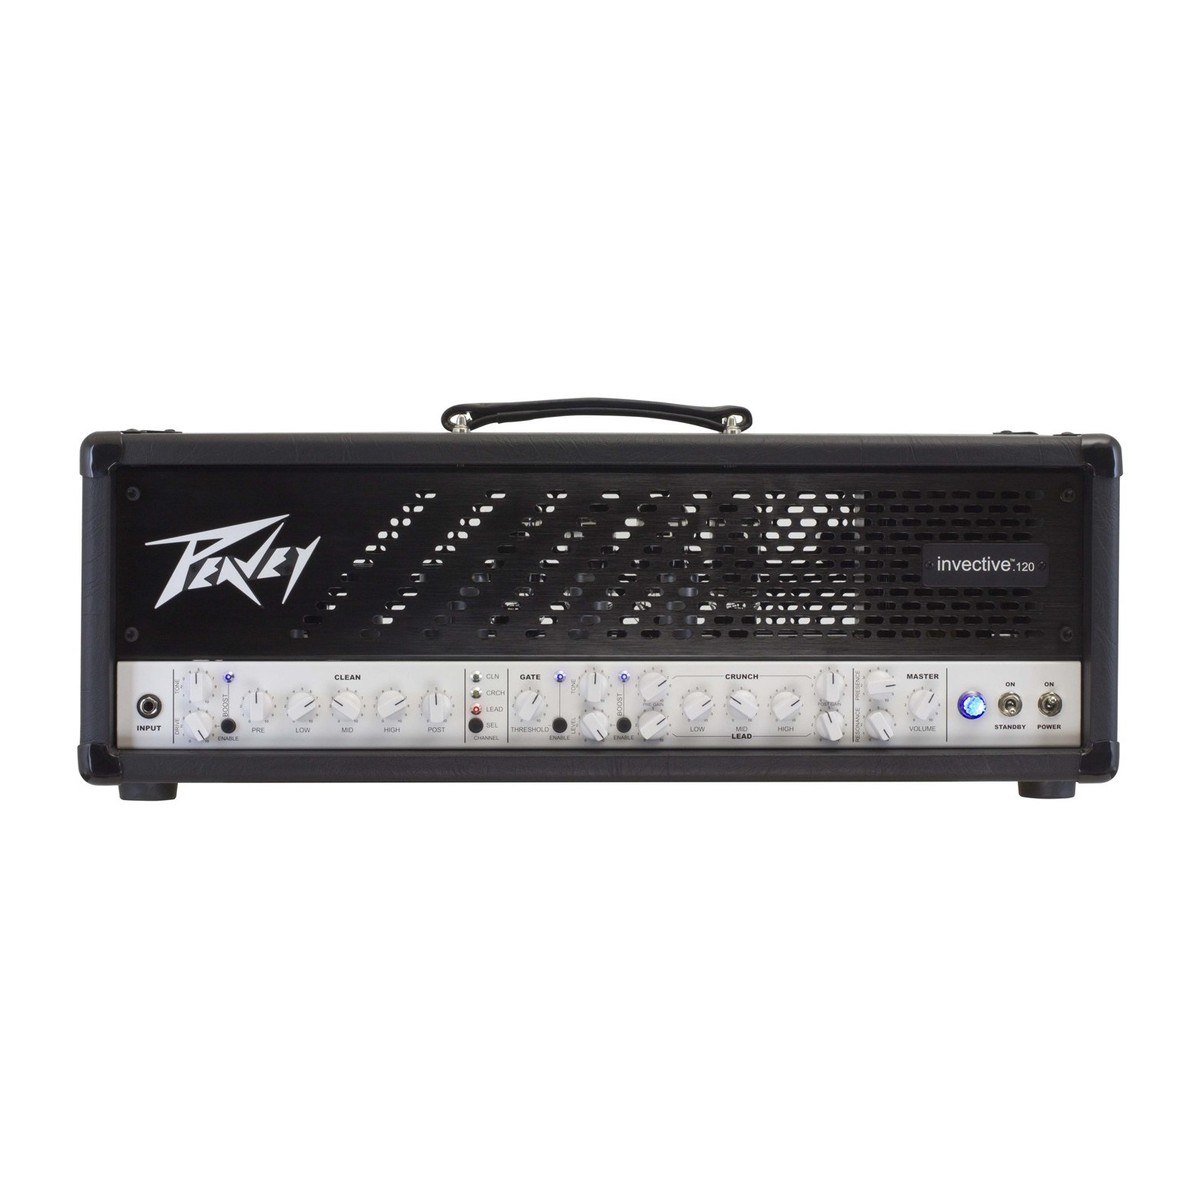 Peavey Invective 120 Guitar Amp Head At Gear4music Electric Pre Amplifier With Noise Gate And Compression Circuit